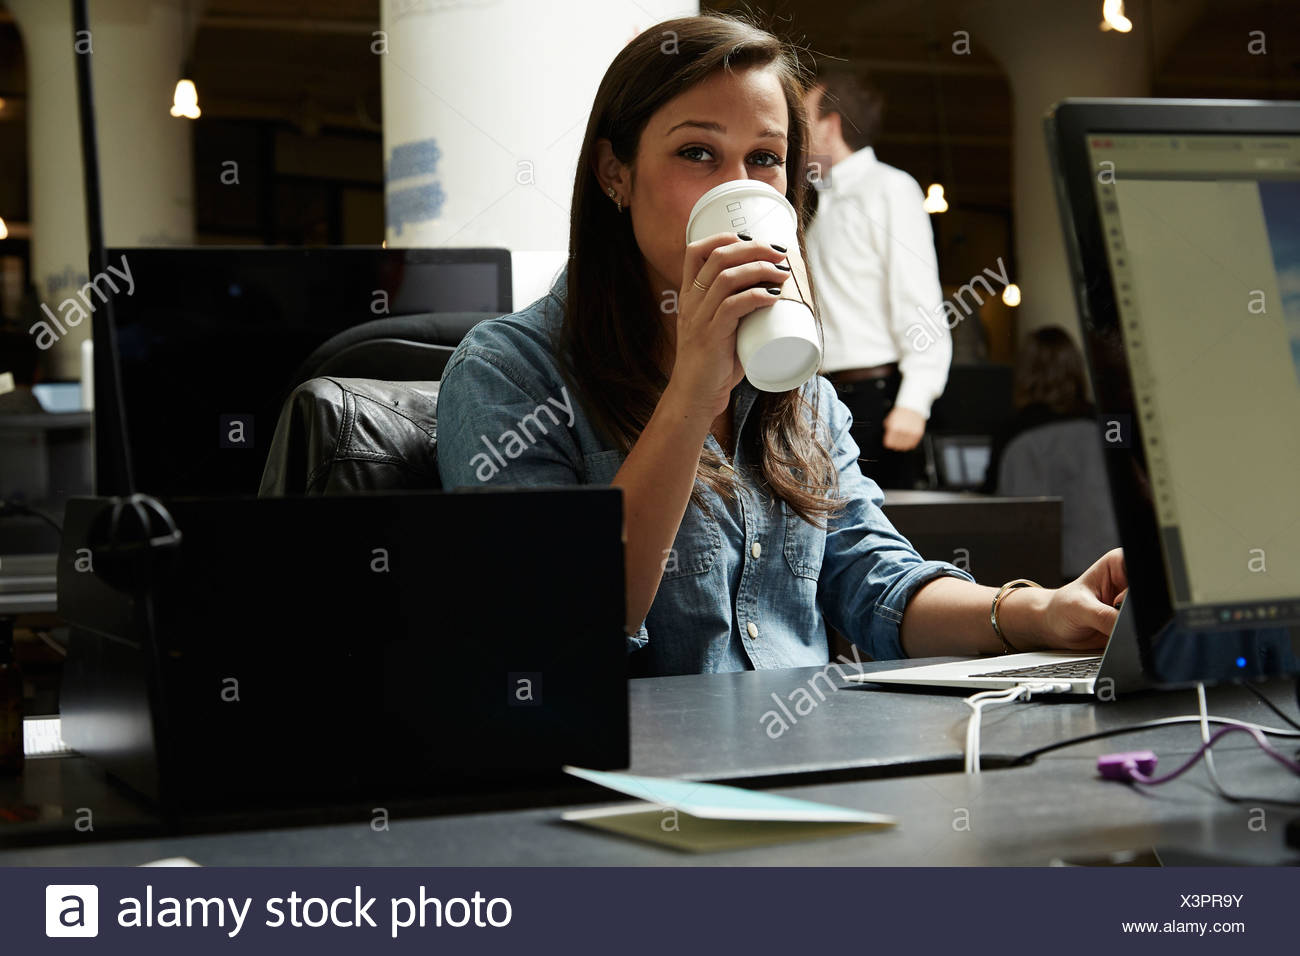 Young woman drinking coffee in office - Stock Image